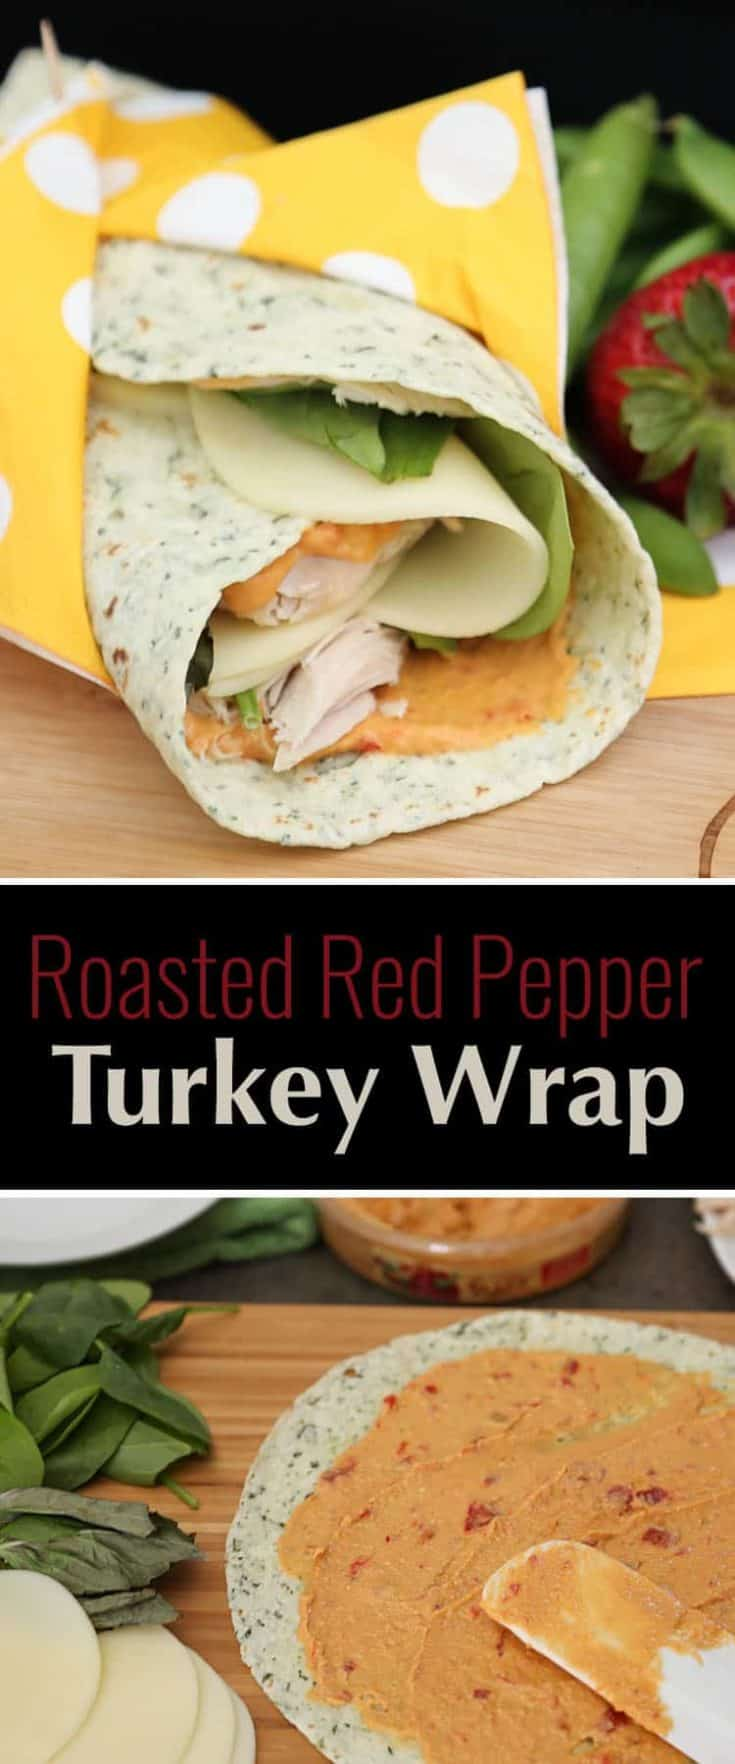 Roasted Red Pepper Turkey Wraps uses turkey, fresh spinach, basil, tasty provolone cheese, and Sabra Roasted Red Pepper Hummus for the spread. YUM! #turkey #wrap #lunchrecipe